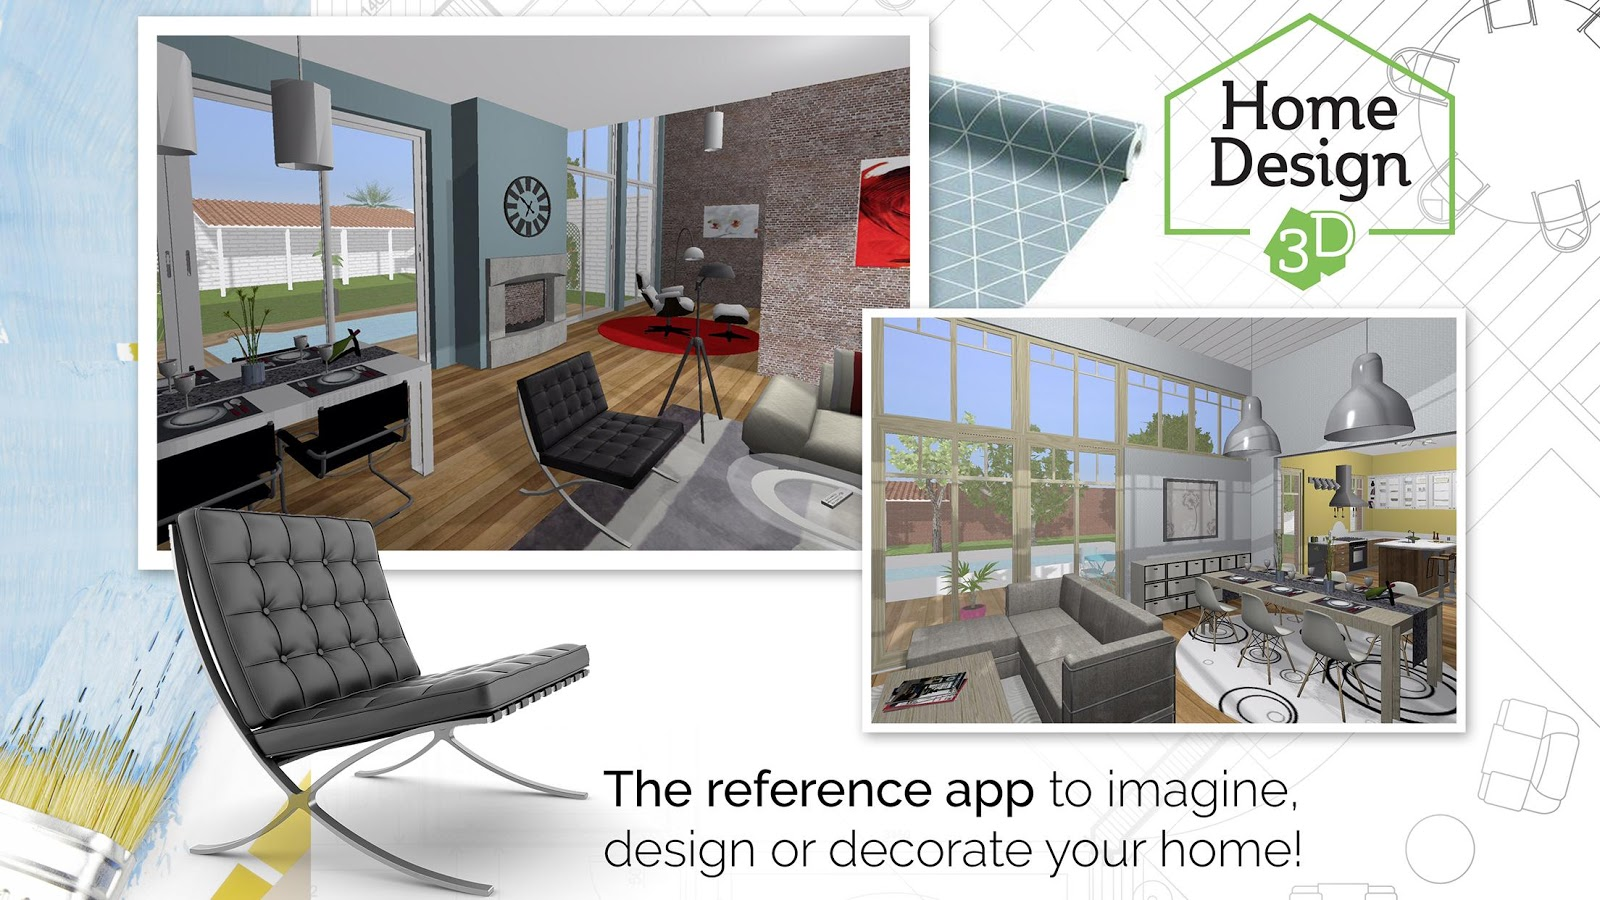 Home design 3d freemium android apps on google play Design your room app